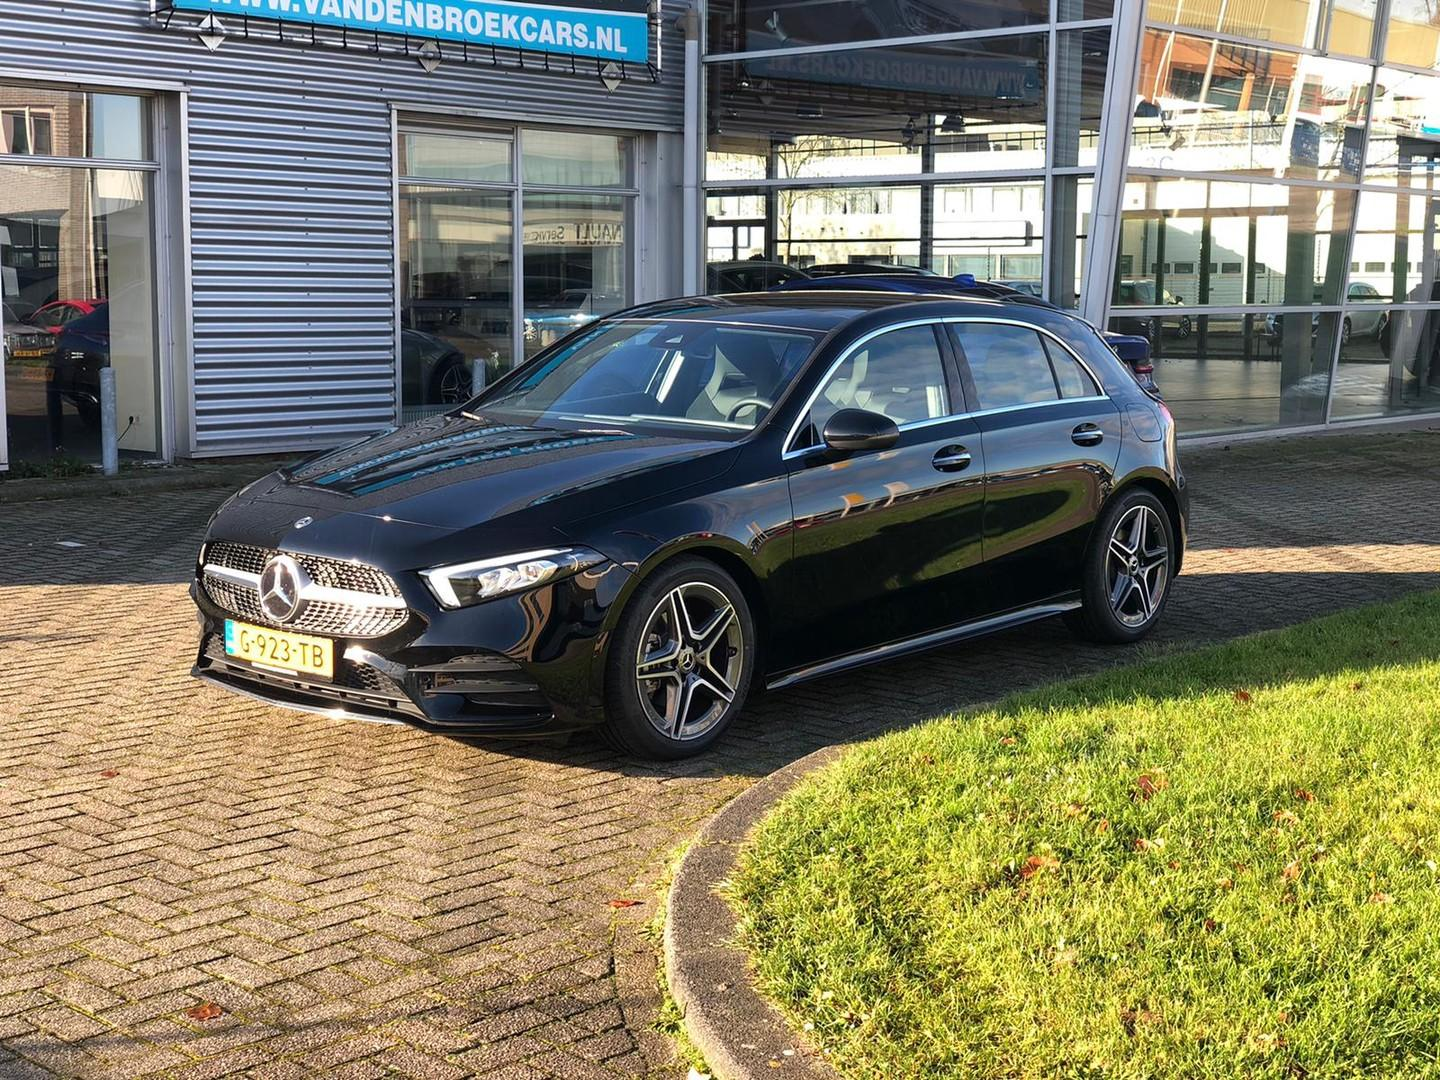 Mercedes-benz A-klasse 200 amg / pano / ambient / wide screen / 18' /